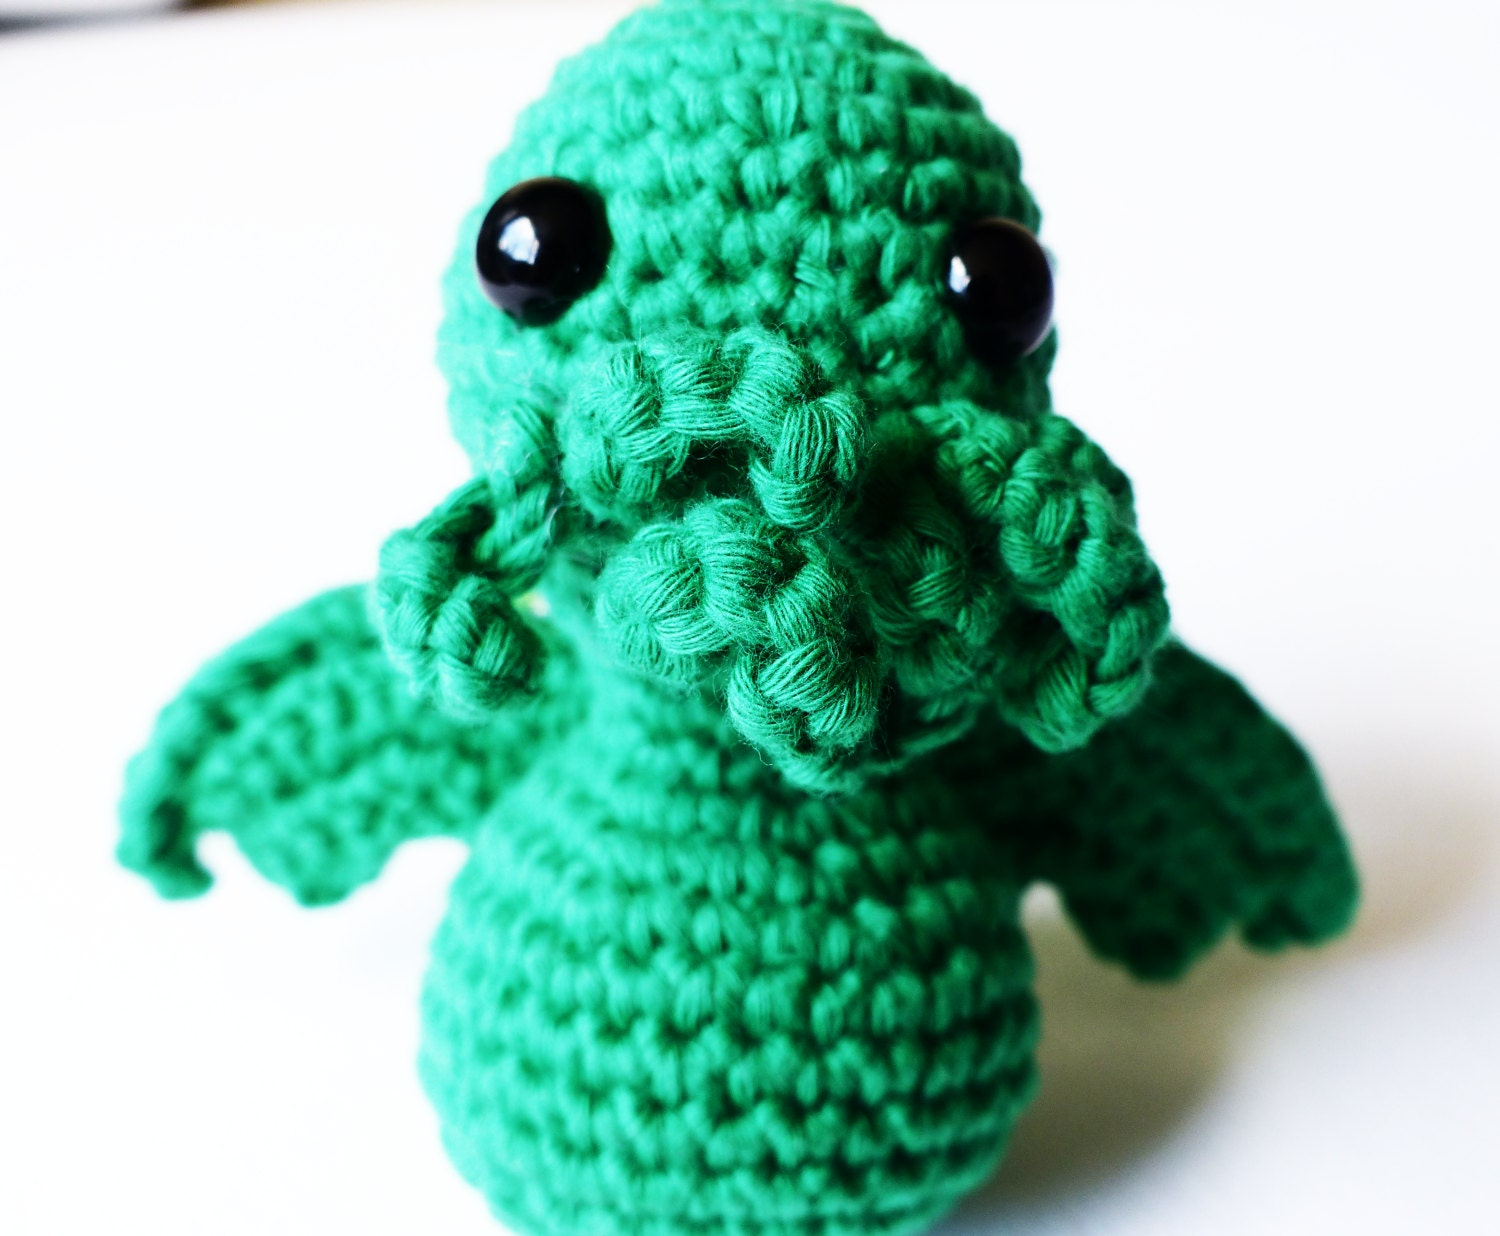 Cthulhu crochet for beginners patterns patterns kid crochet pattern amigurumi cthulhu crochet 1500x1236 bankloansurffo Choice Image